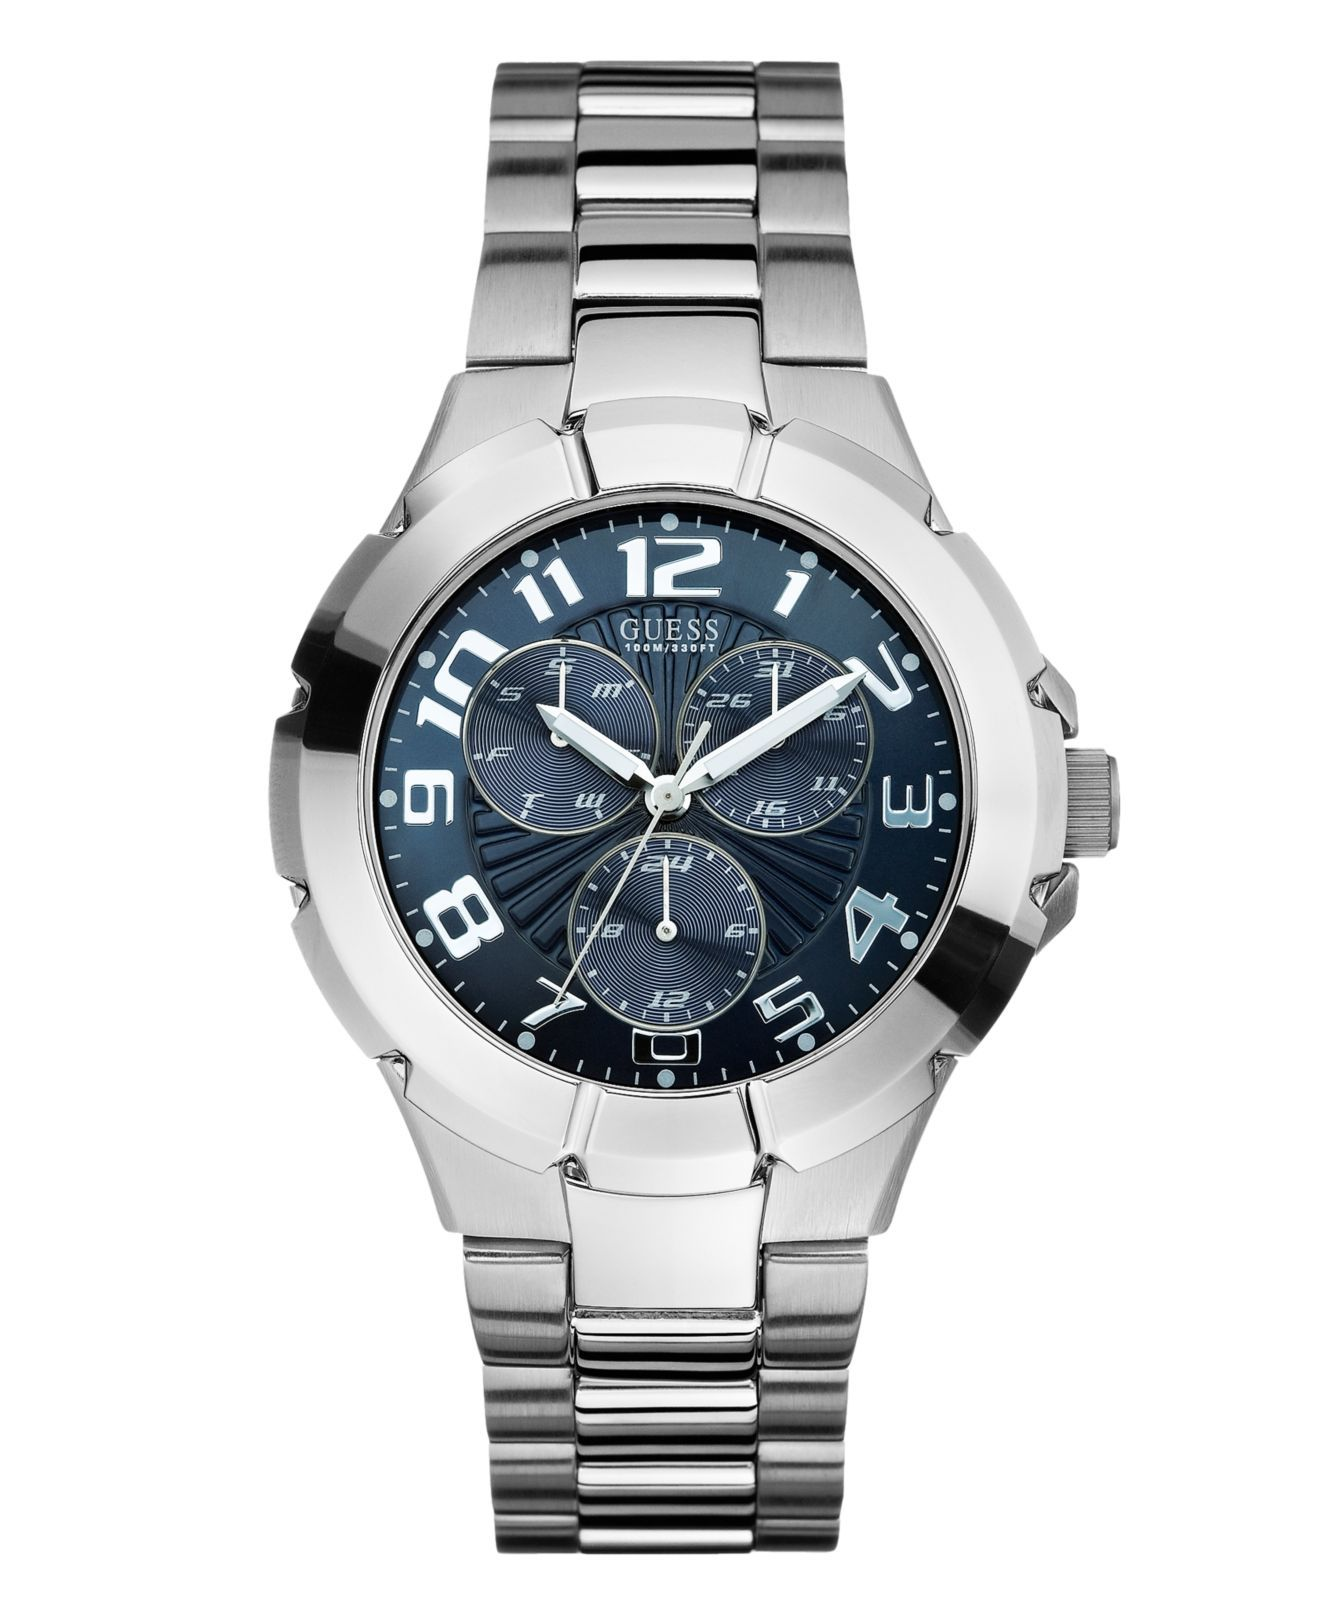 GUESS Watch, Men's Stainless Steel Bracelet 40mm U10607G1 - Men's Watches - Jewelry & Watches - Macy's